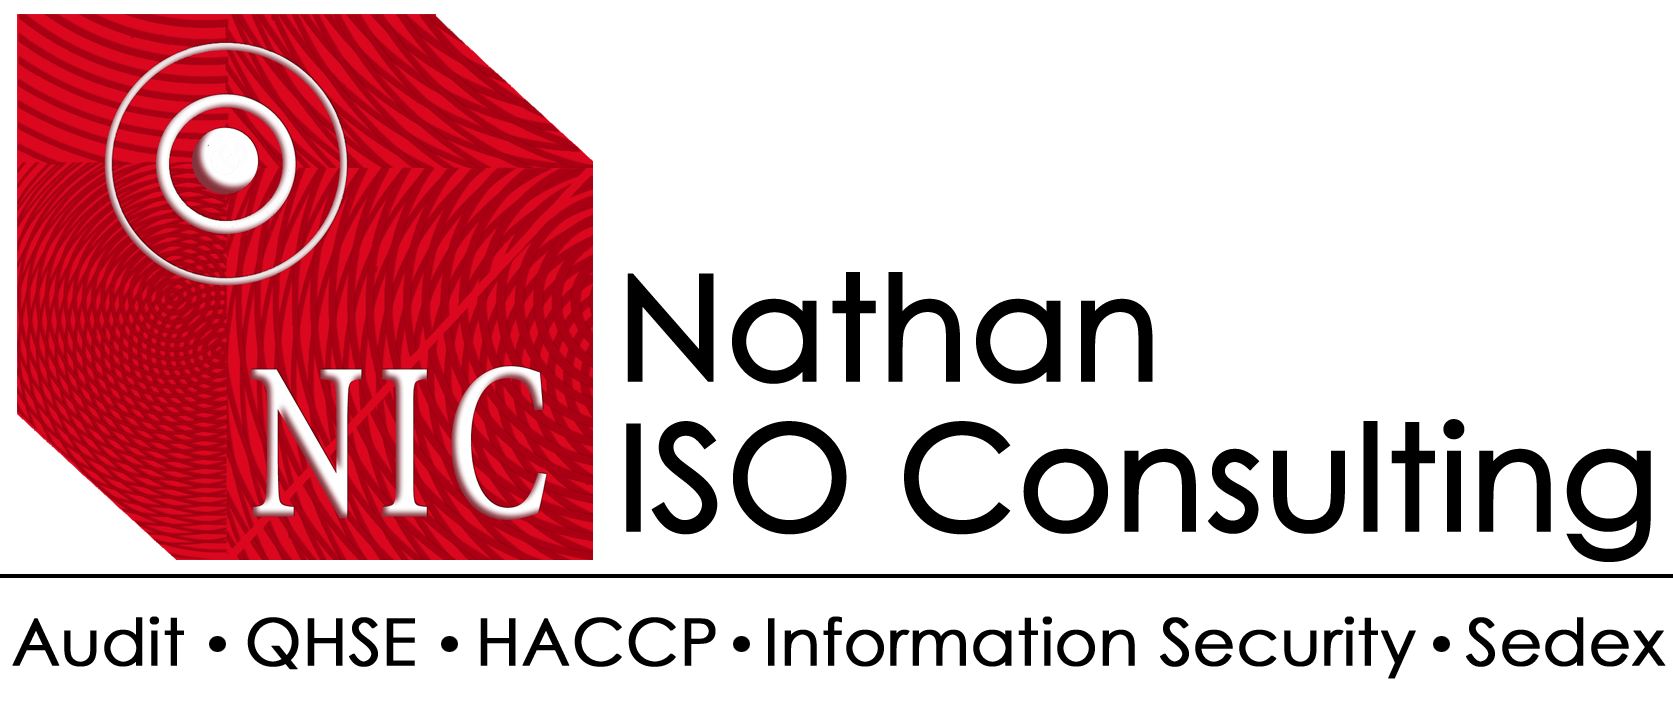 Nathan ISO Certification